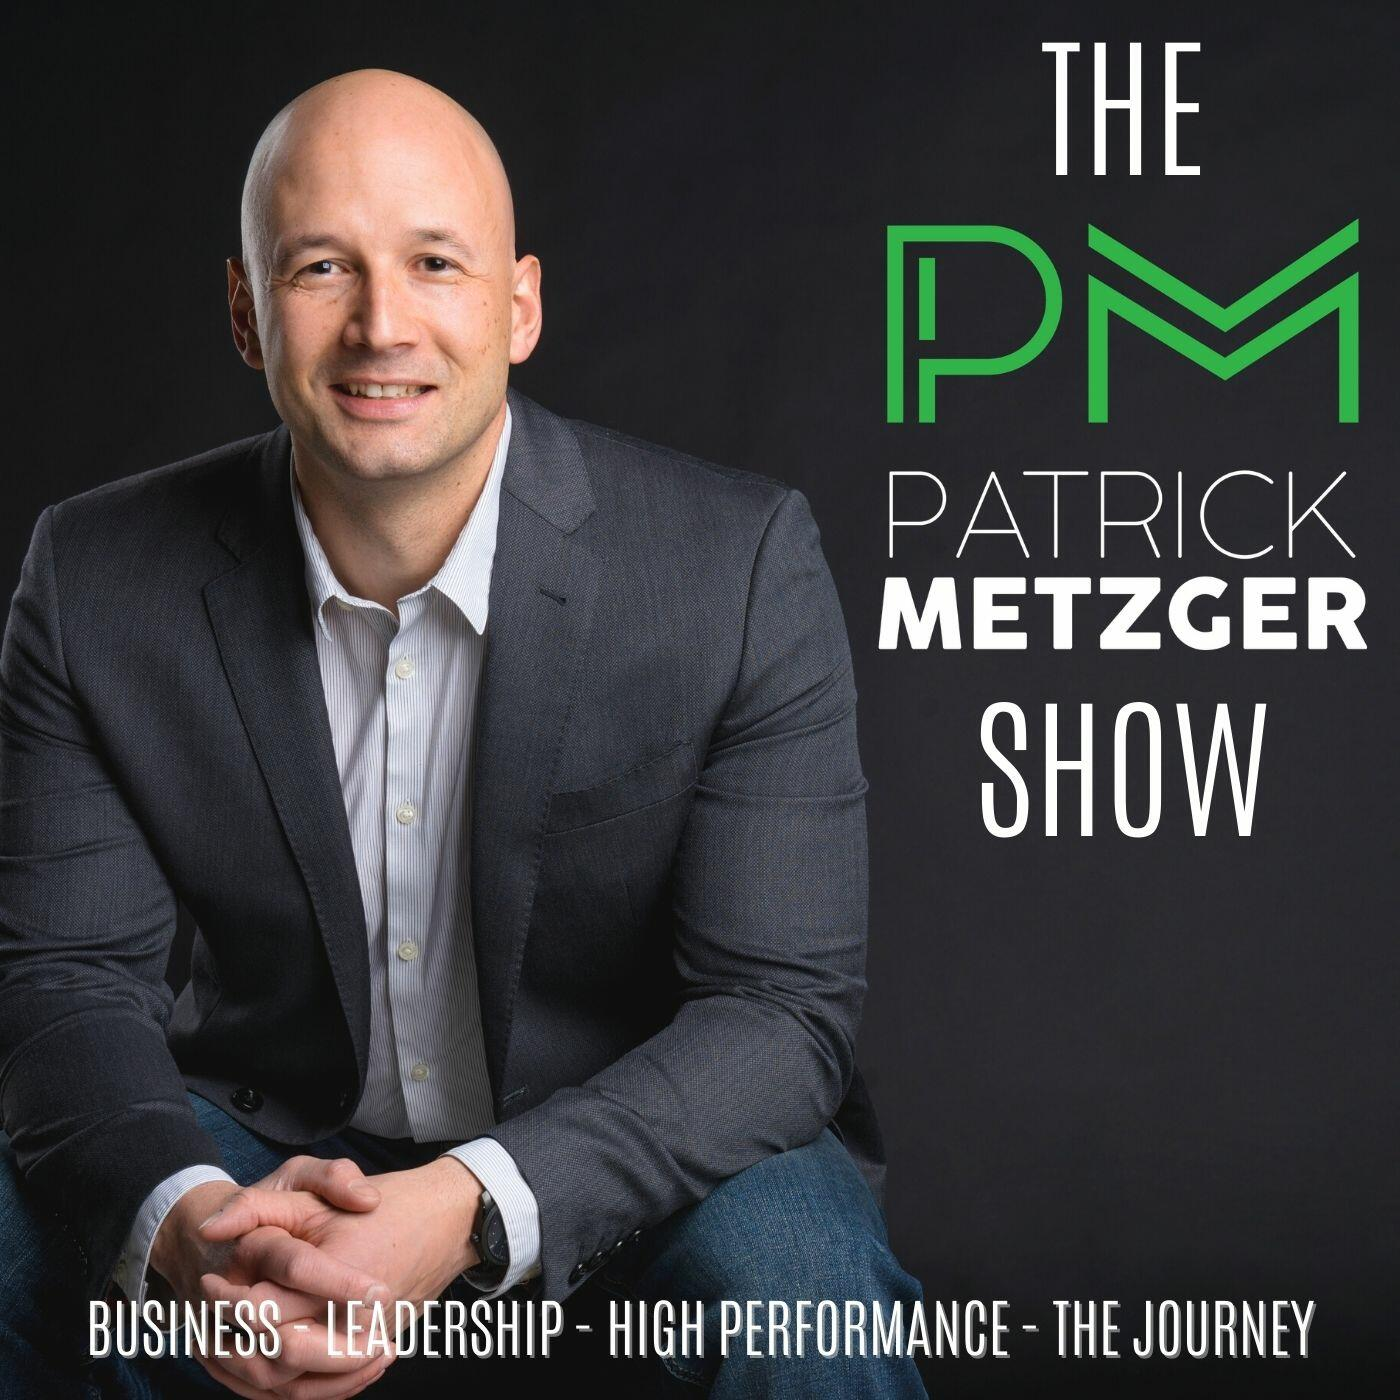 The Patrick Metzger Show